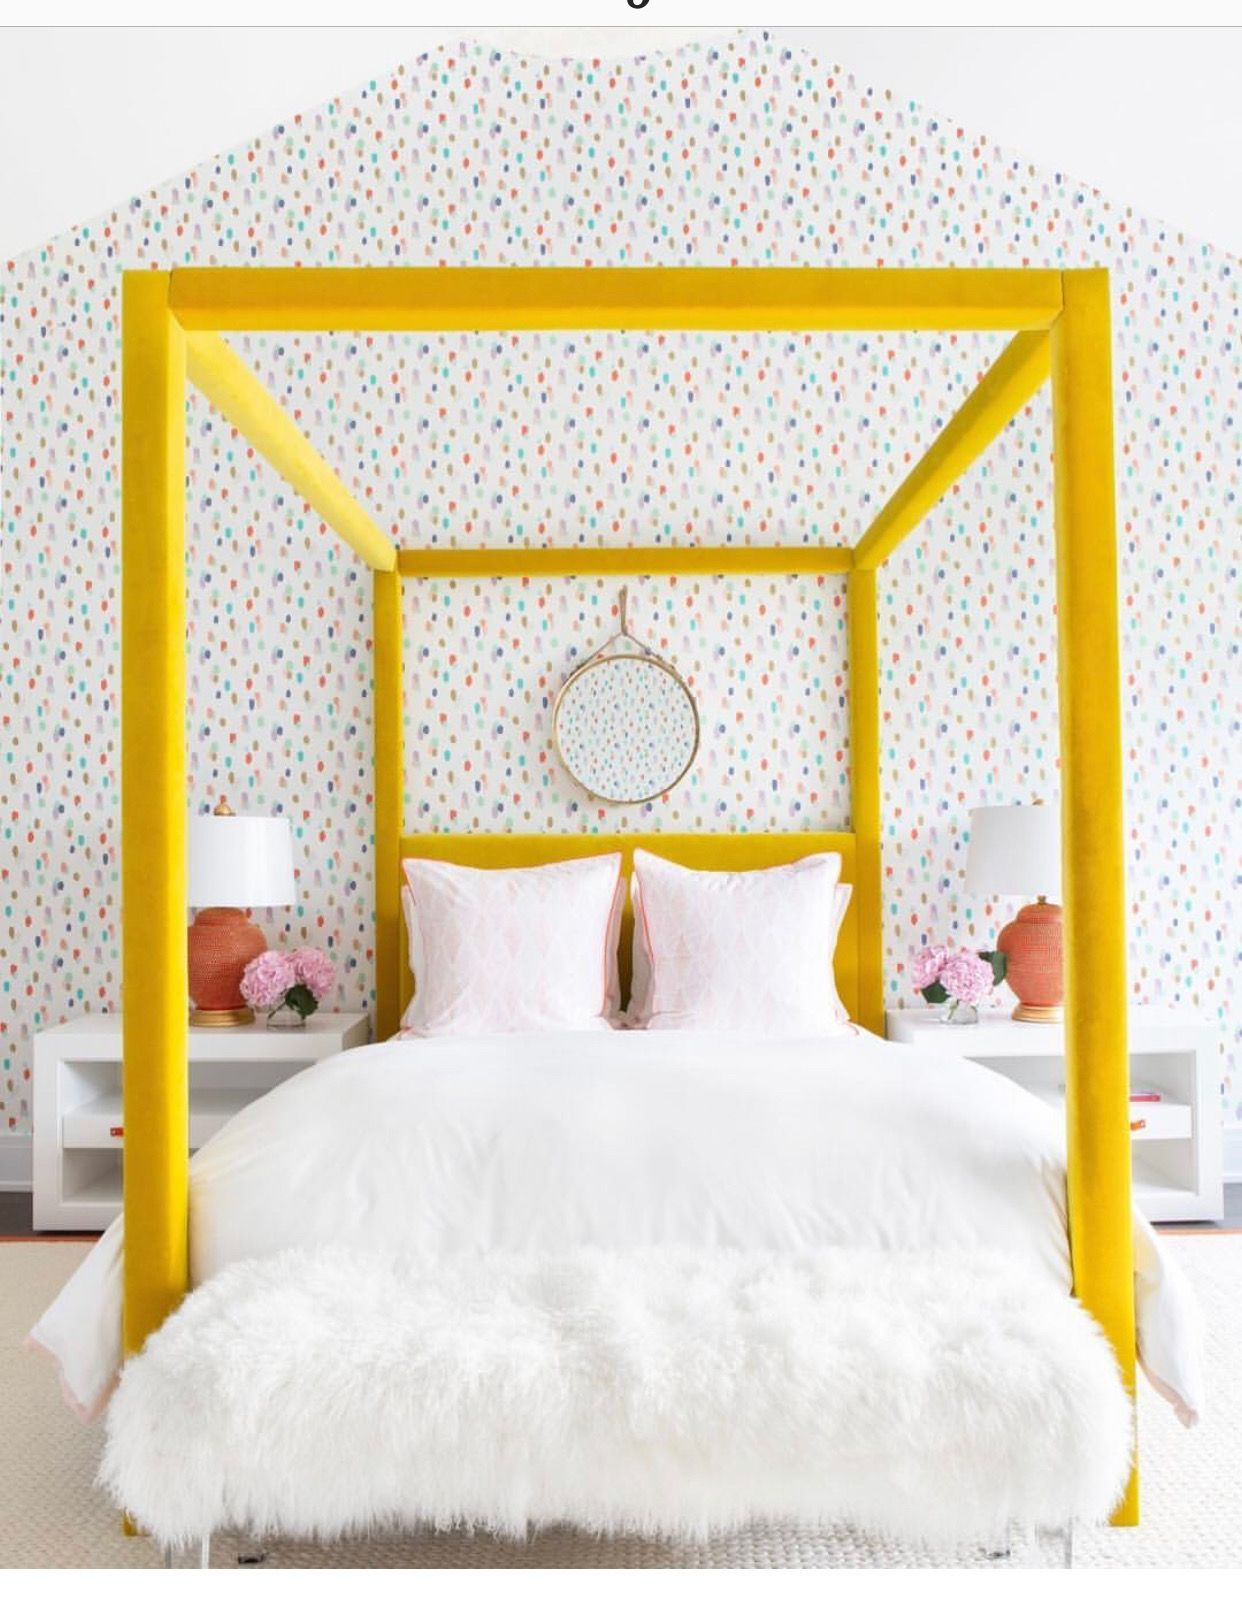 Pin By Michelle Irby On The Ideal Space Yellow Bedroom Yellow Bedding Cheap Home Decor